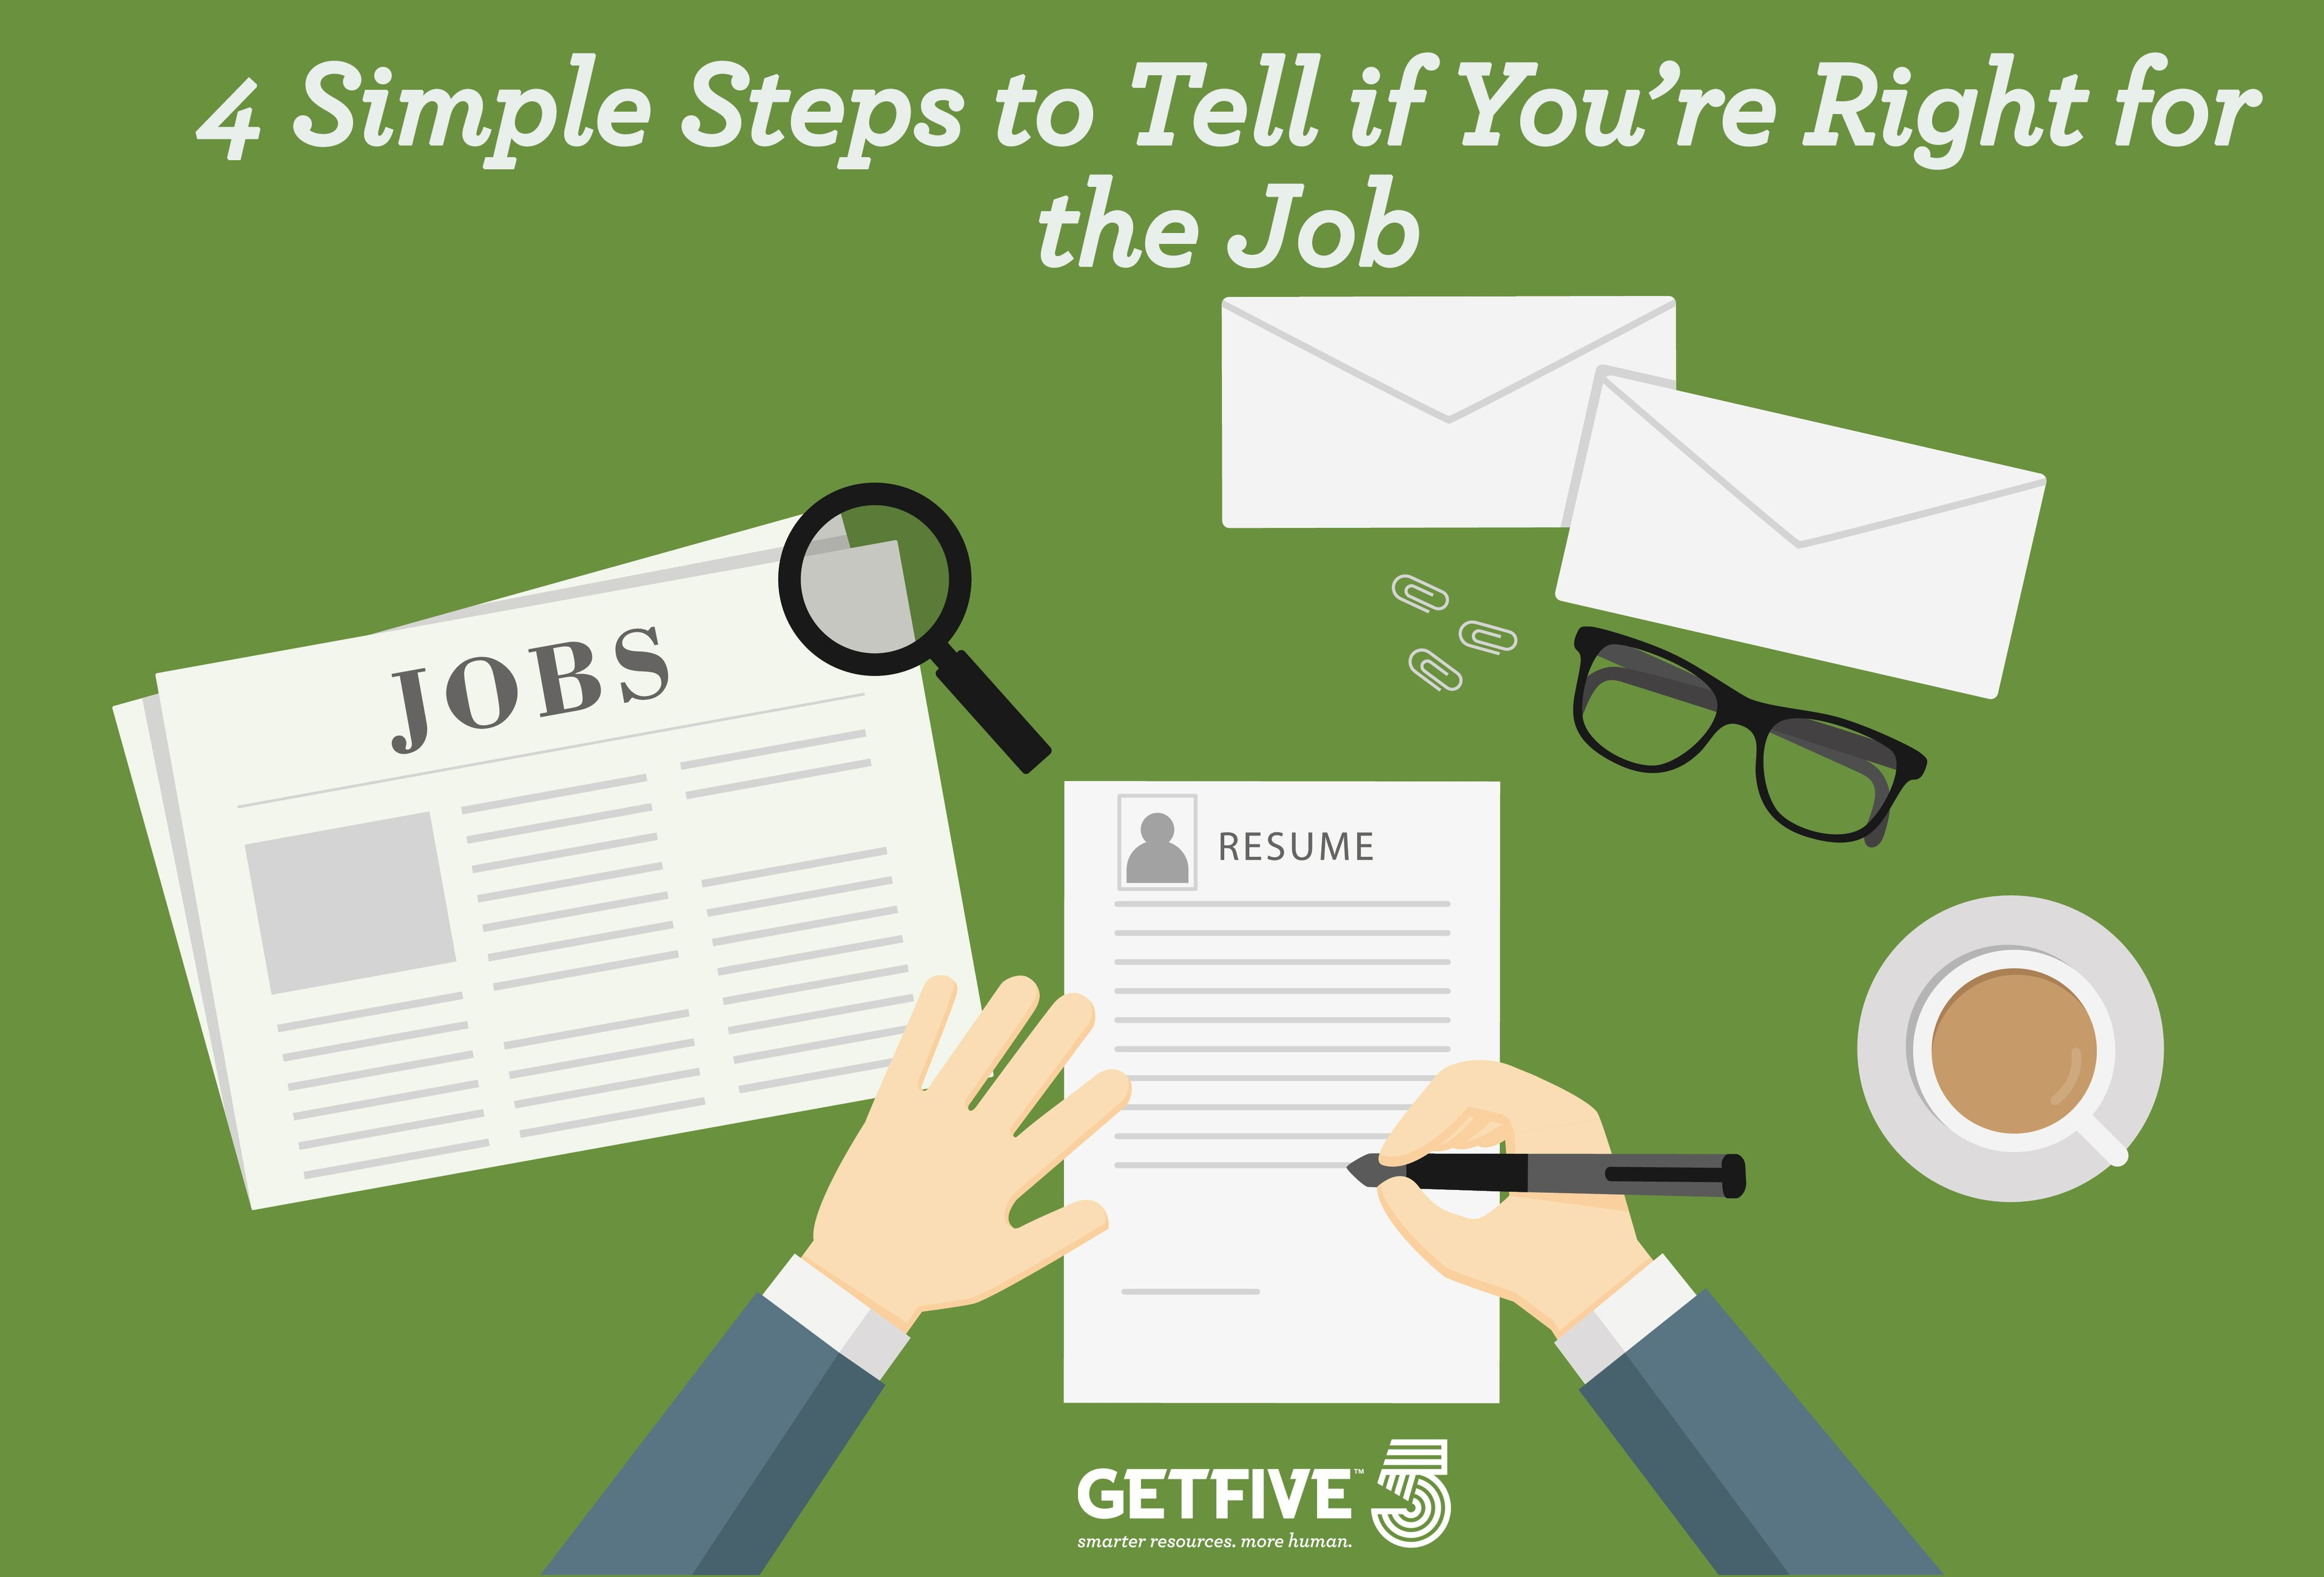 4 Simple Steps to Tell if You're Right for the Job